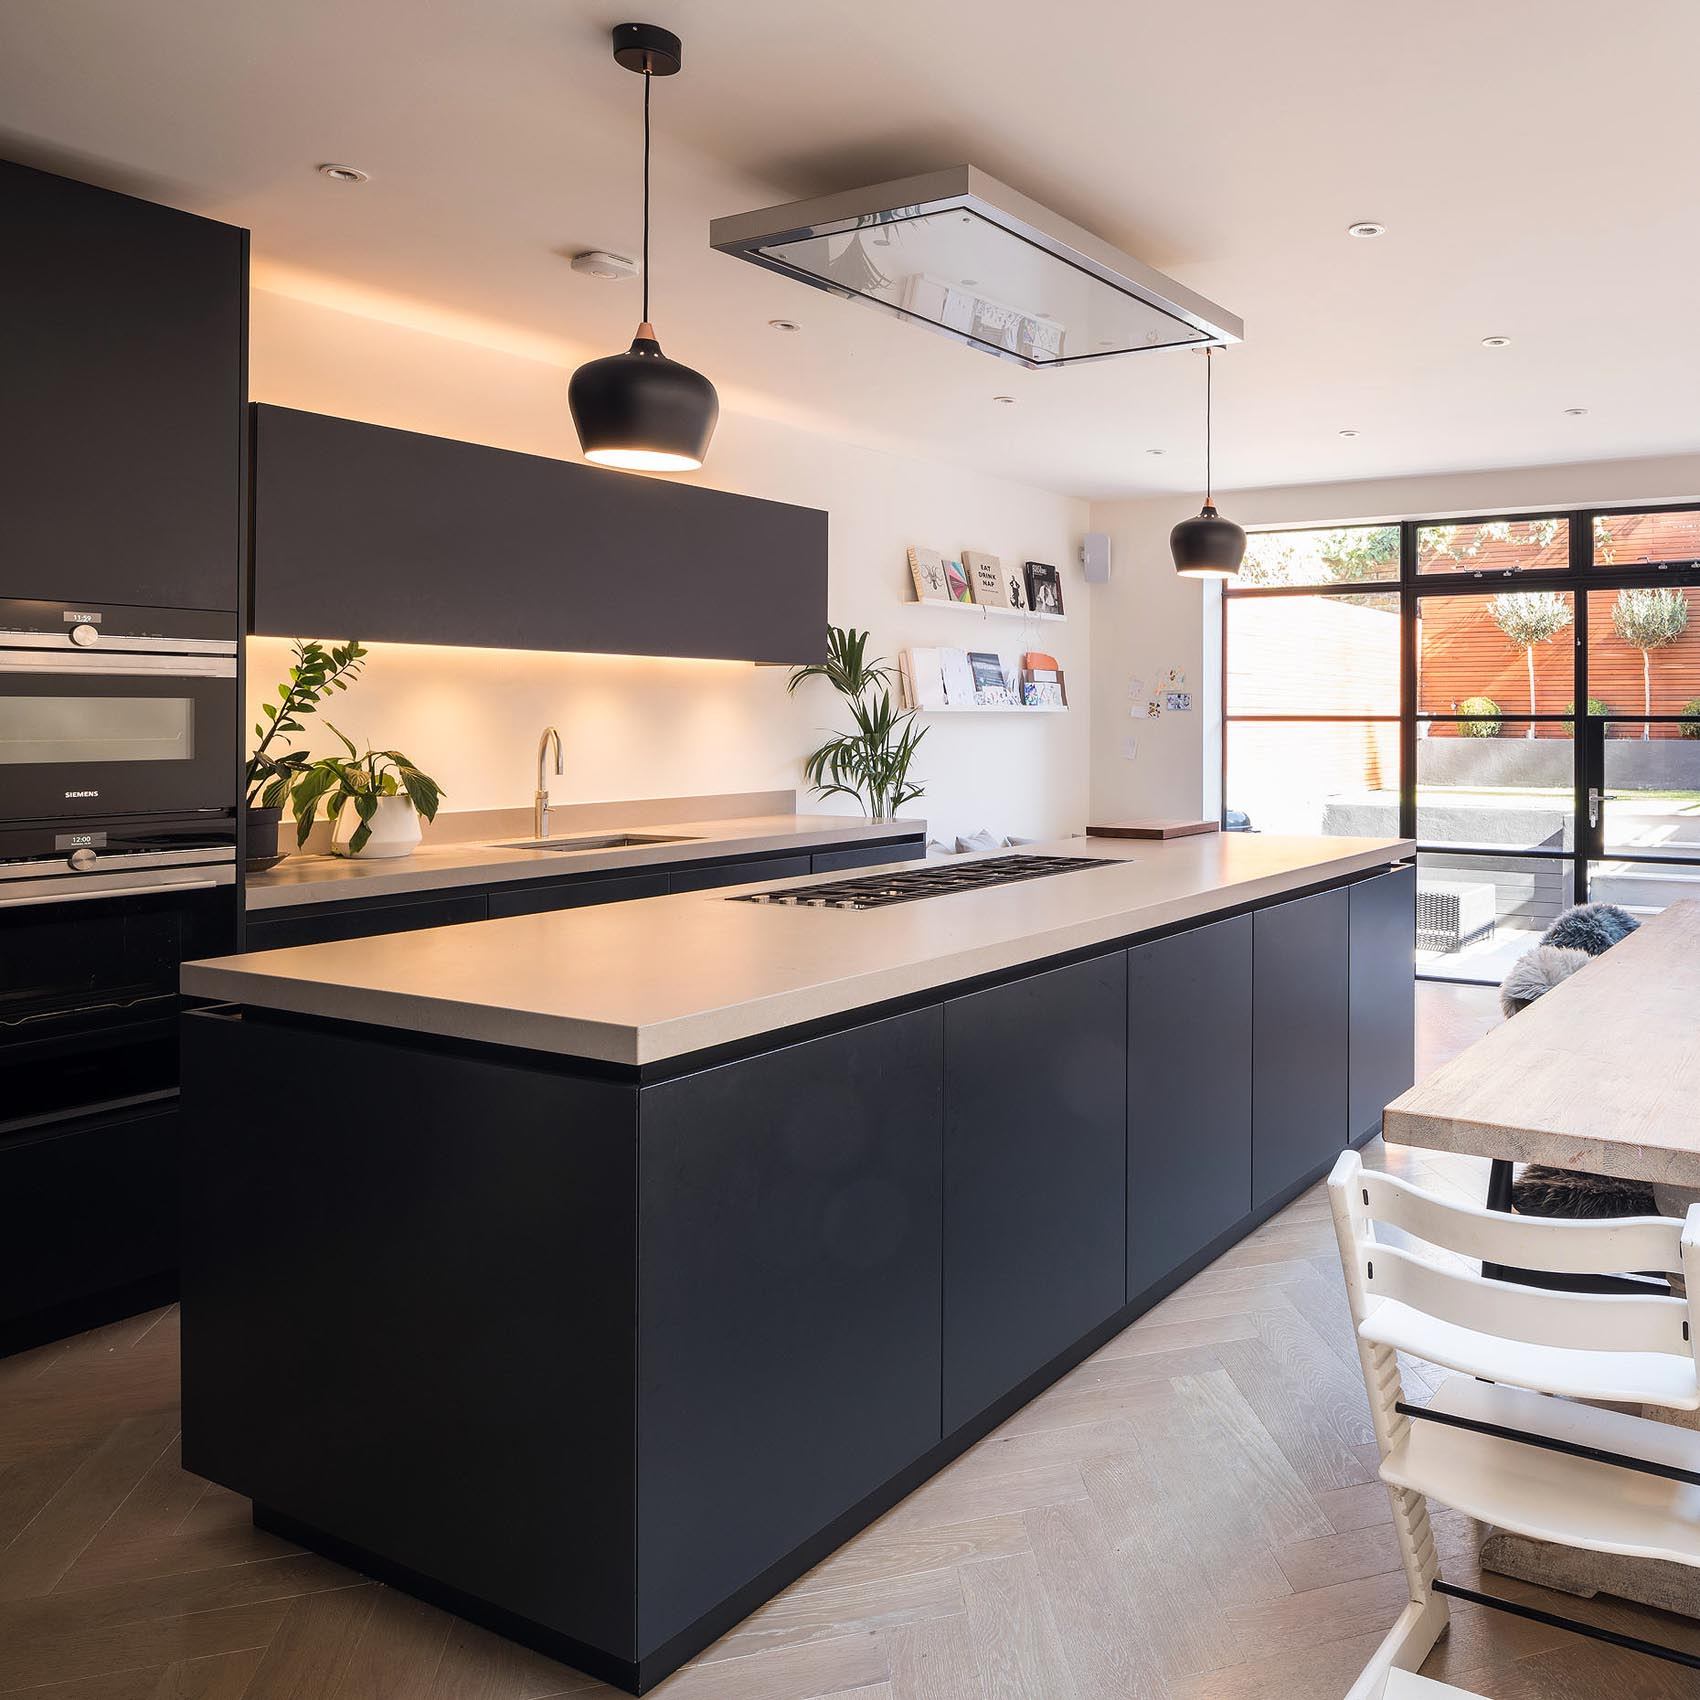 modern-kitchen-island-interior-photographer-london